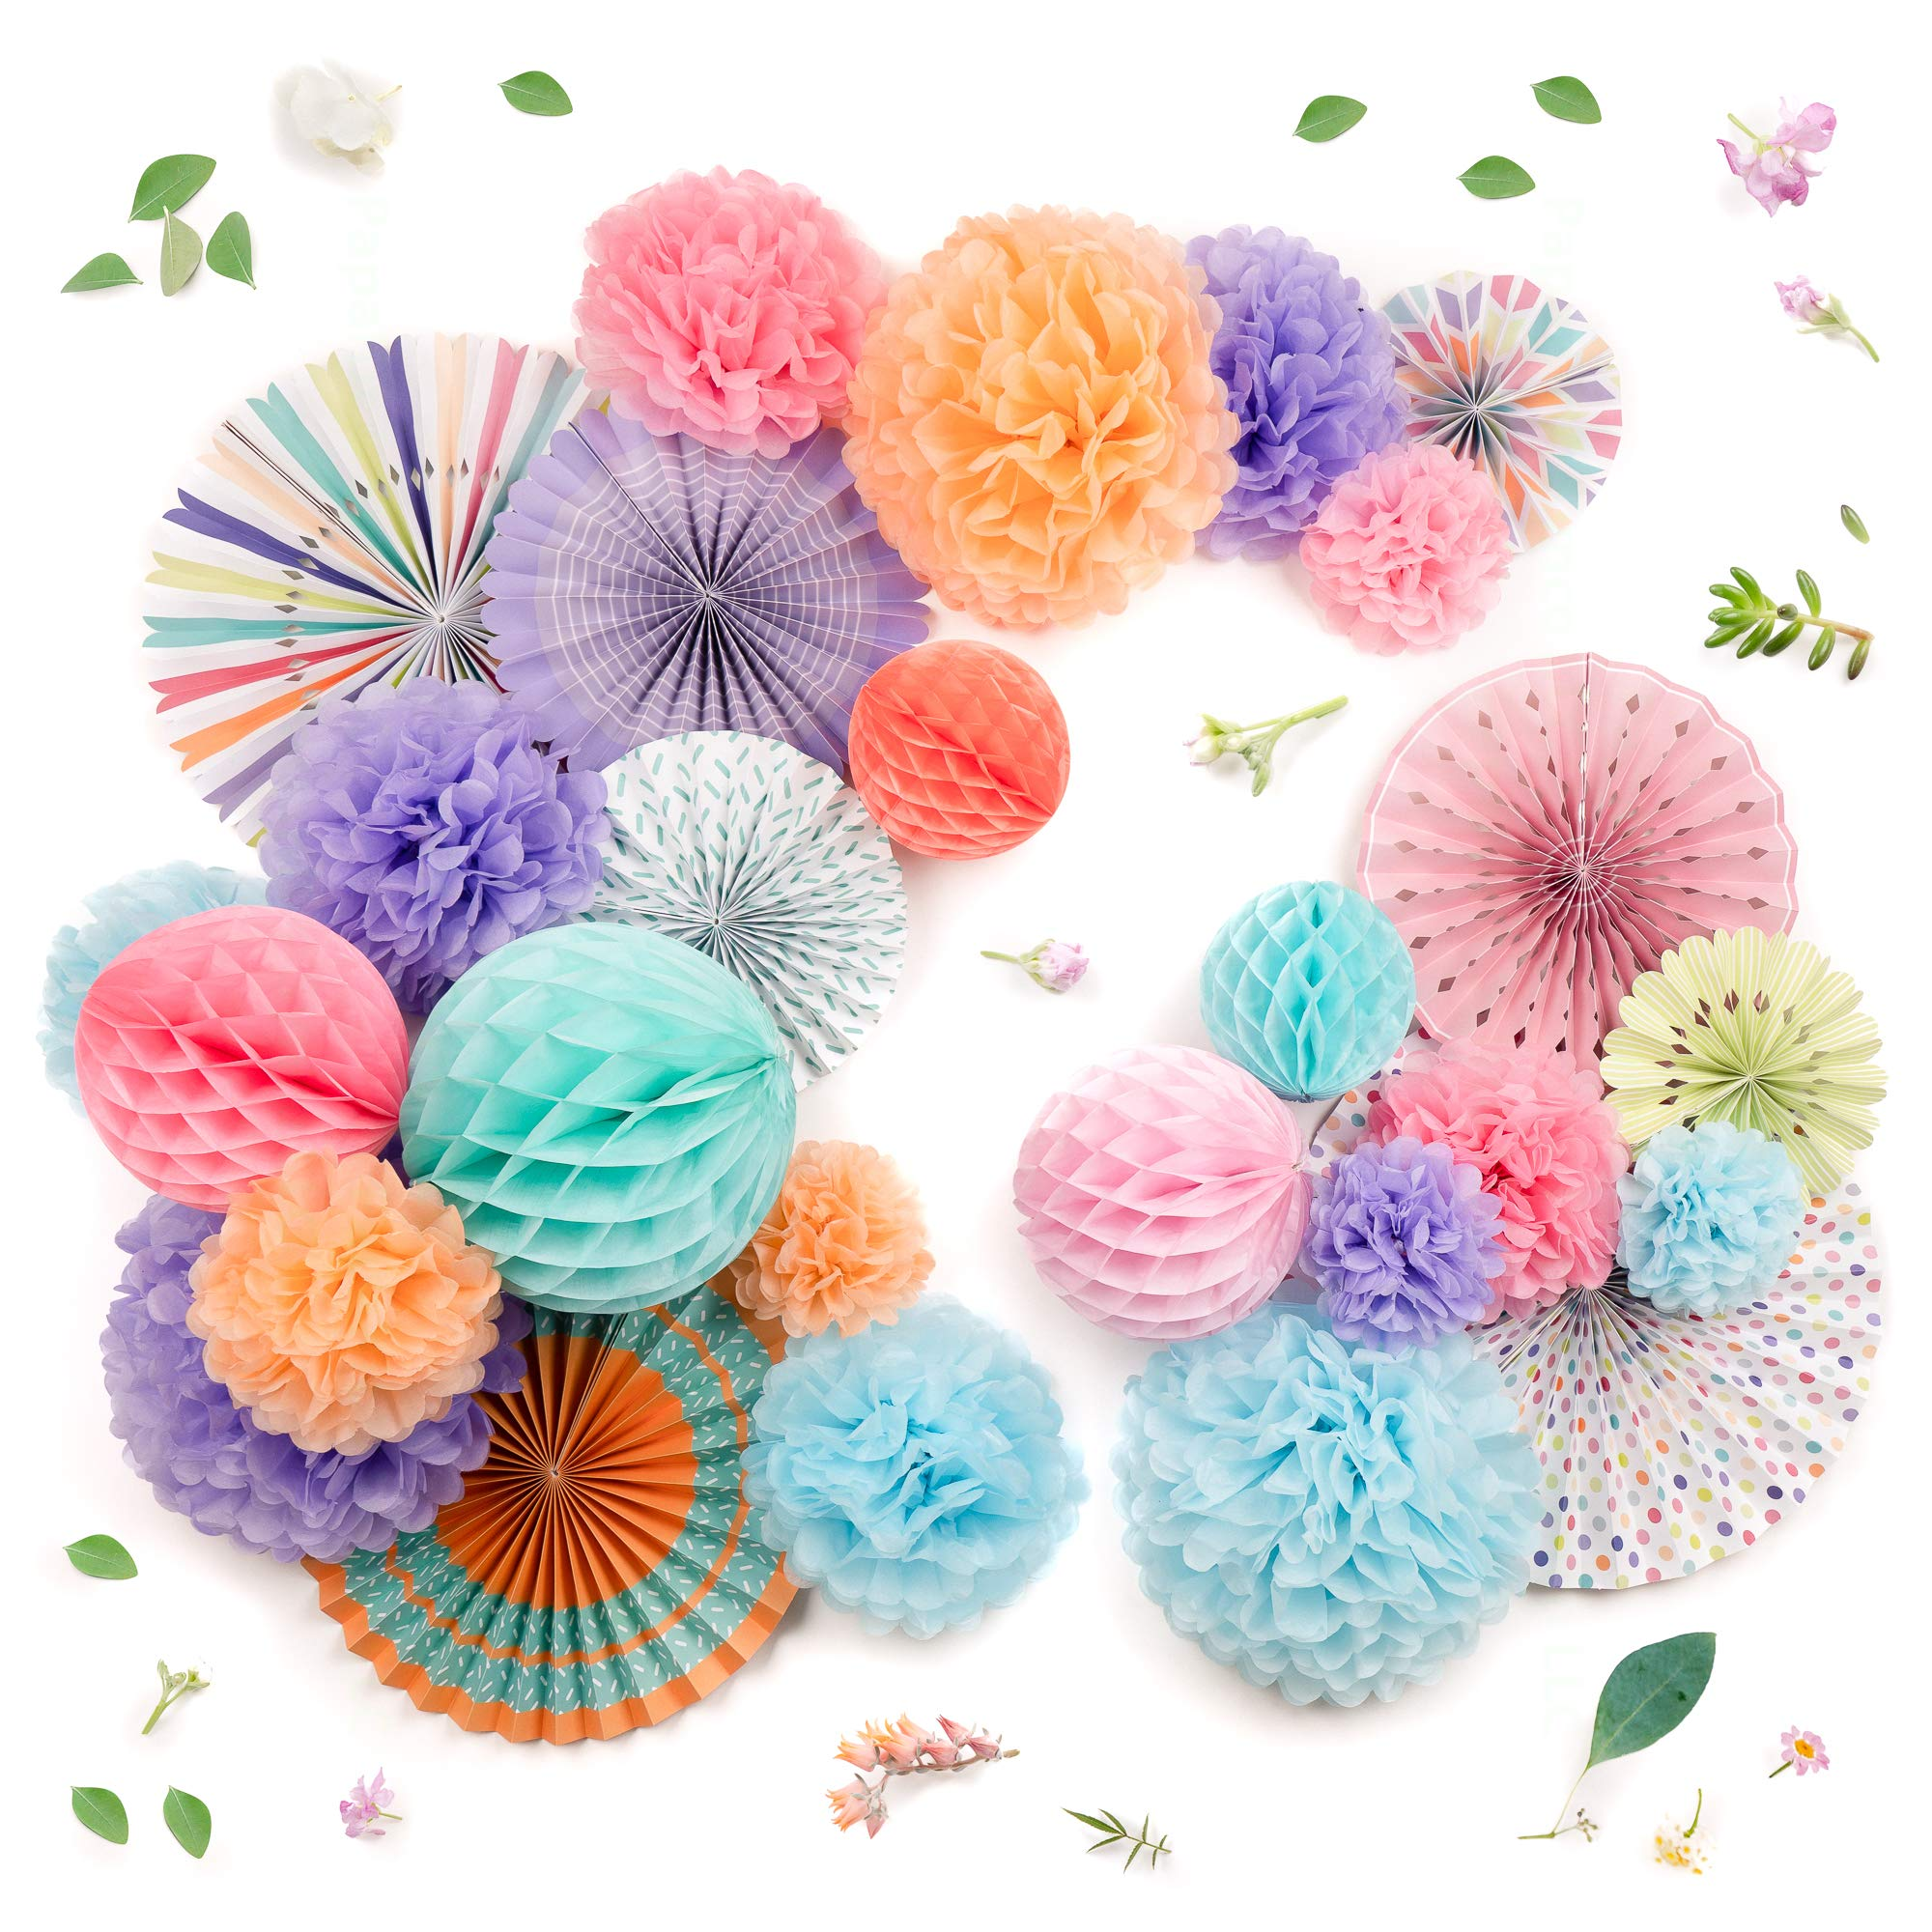 PapaKit Deluxe Origami Large Wall Decoration Set (26 Assorted Paper Fans & Pom-poms) Birthday Party Baby Shower Wedding Events Decor | Creative Art Design Pattern (Festive Colors, Deluxe 26 Piece Set) by PapaKit